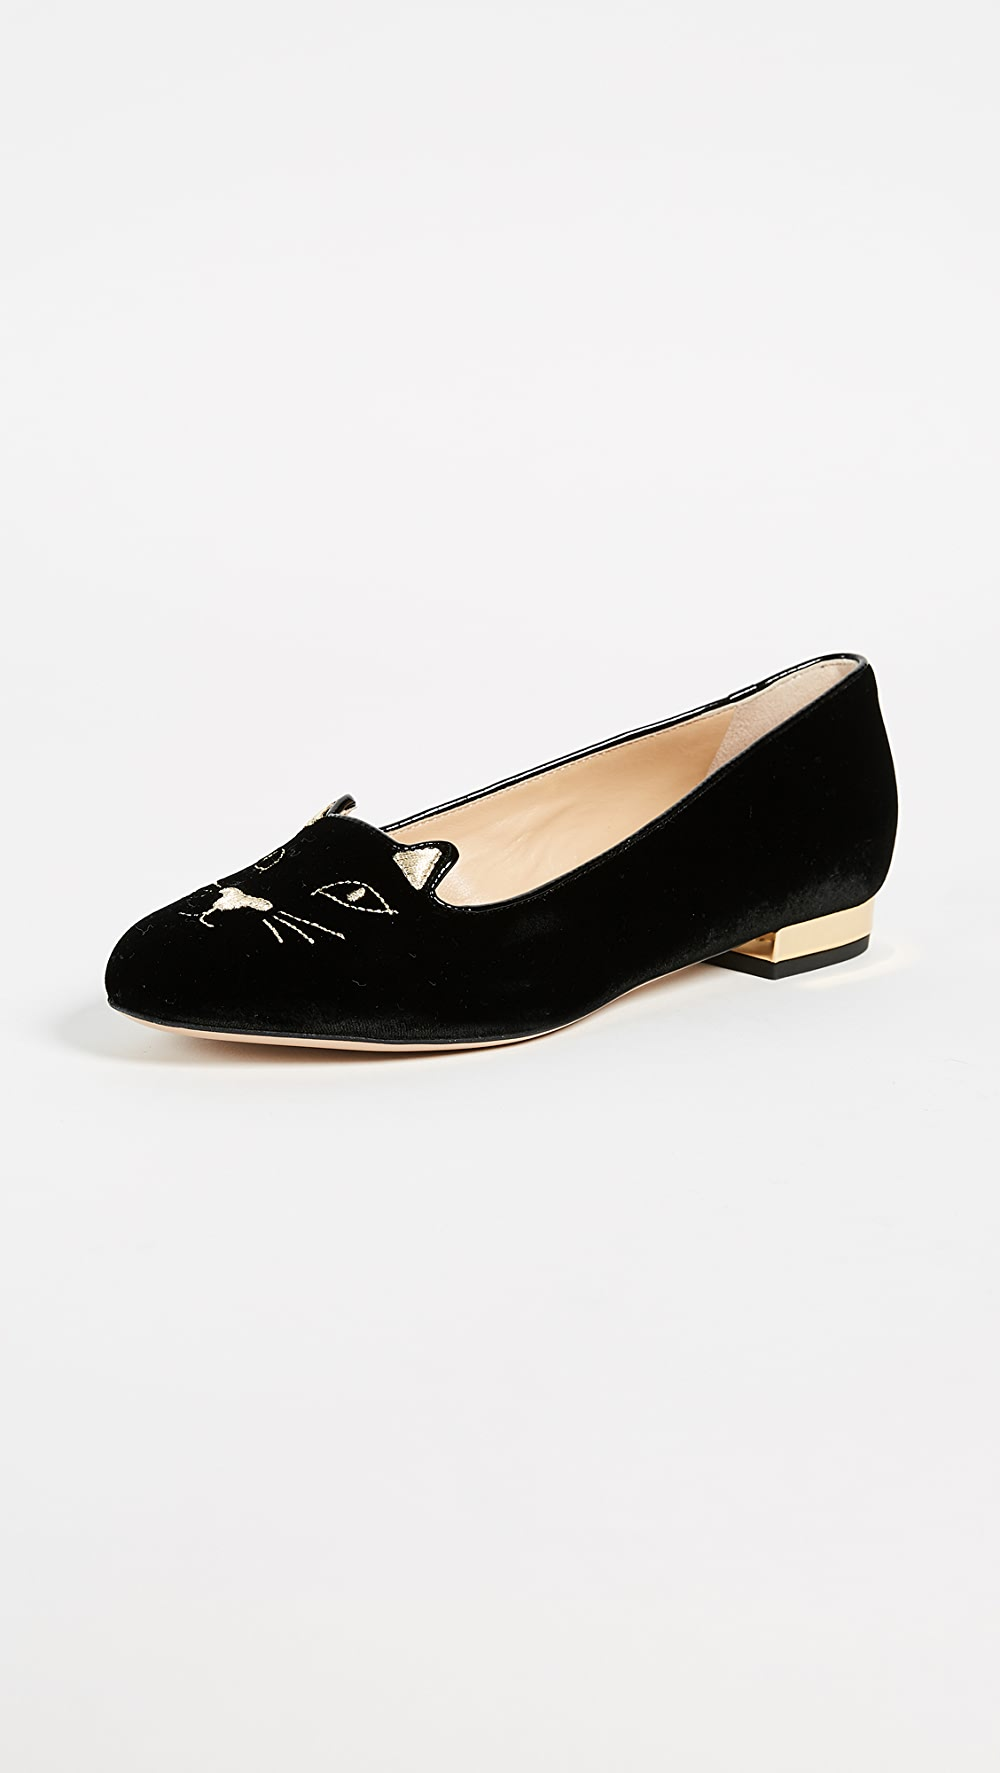 Confident Charlotte Olympia - Kitty Flats Packing Of Nominated Brand